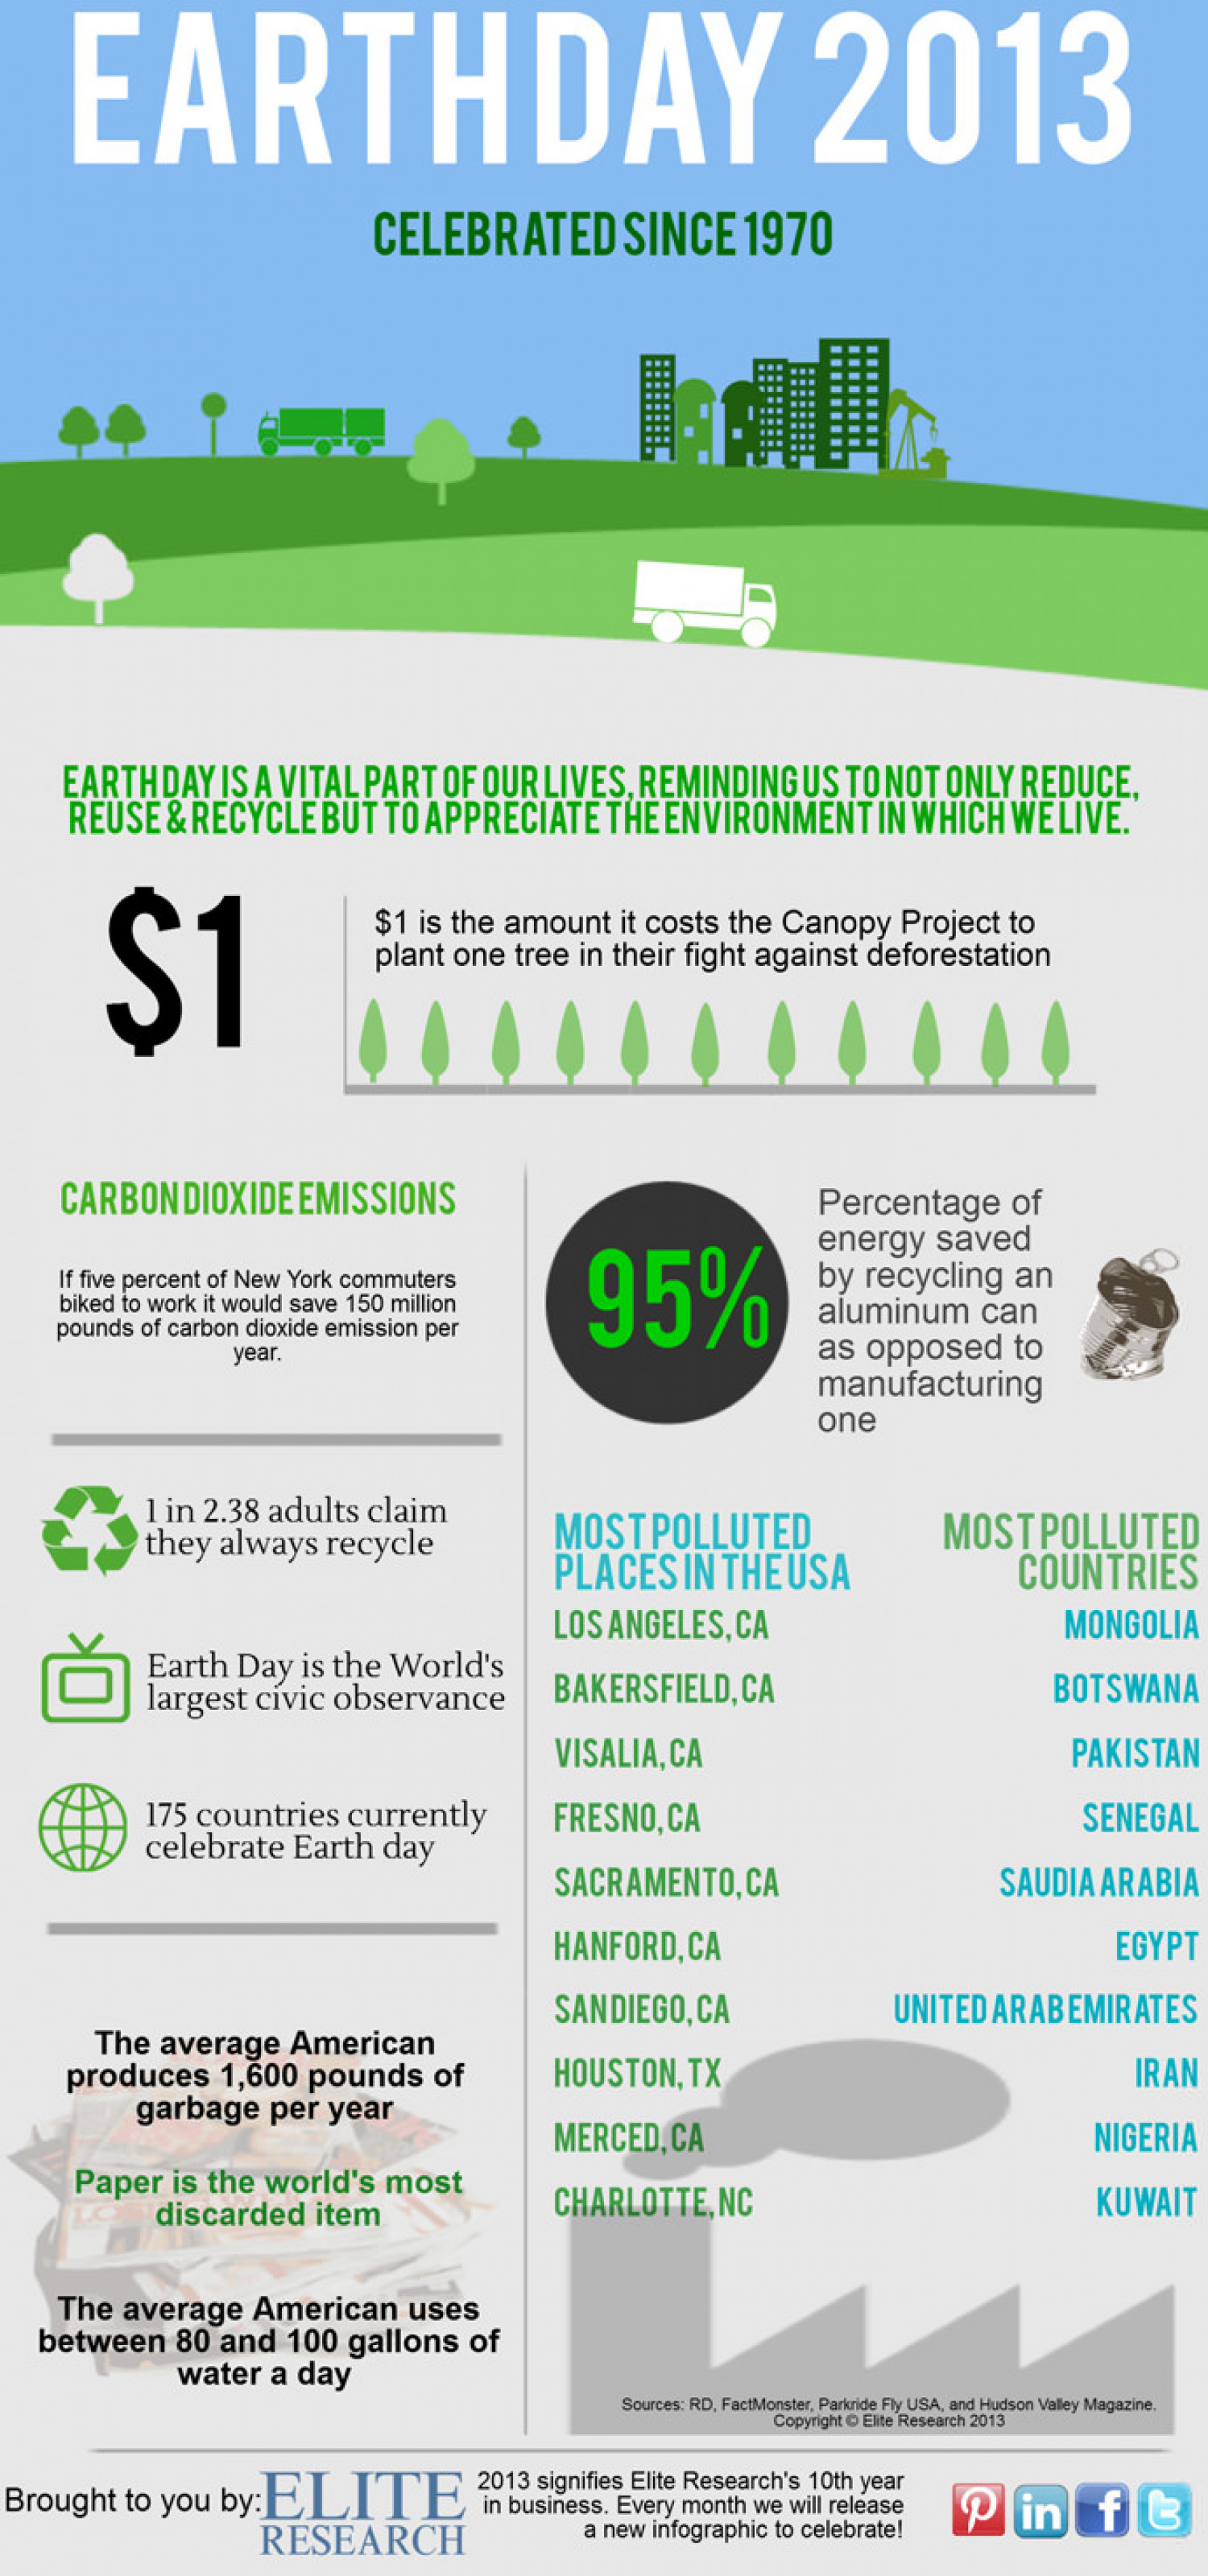 Earth Day 2013 Infographic